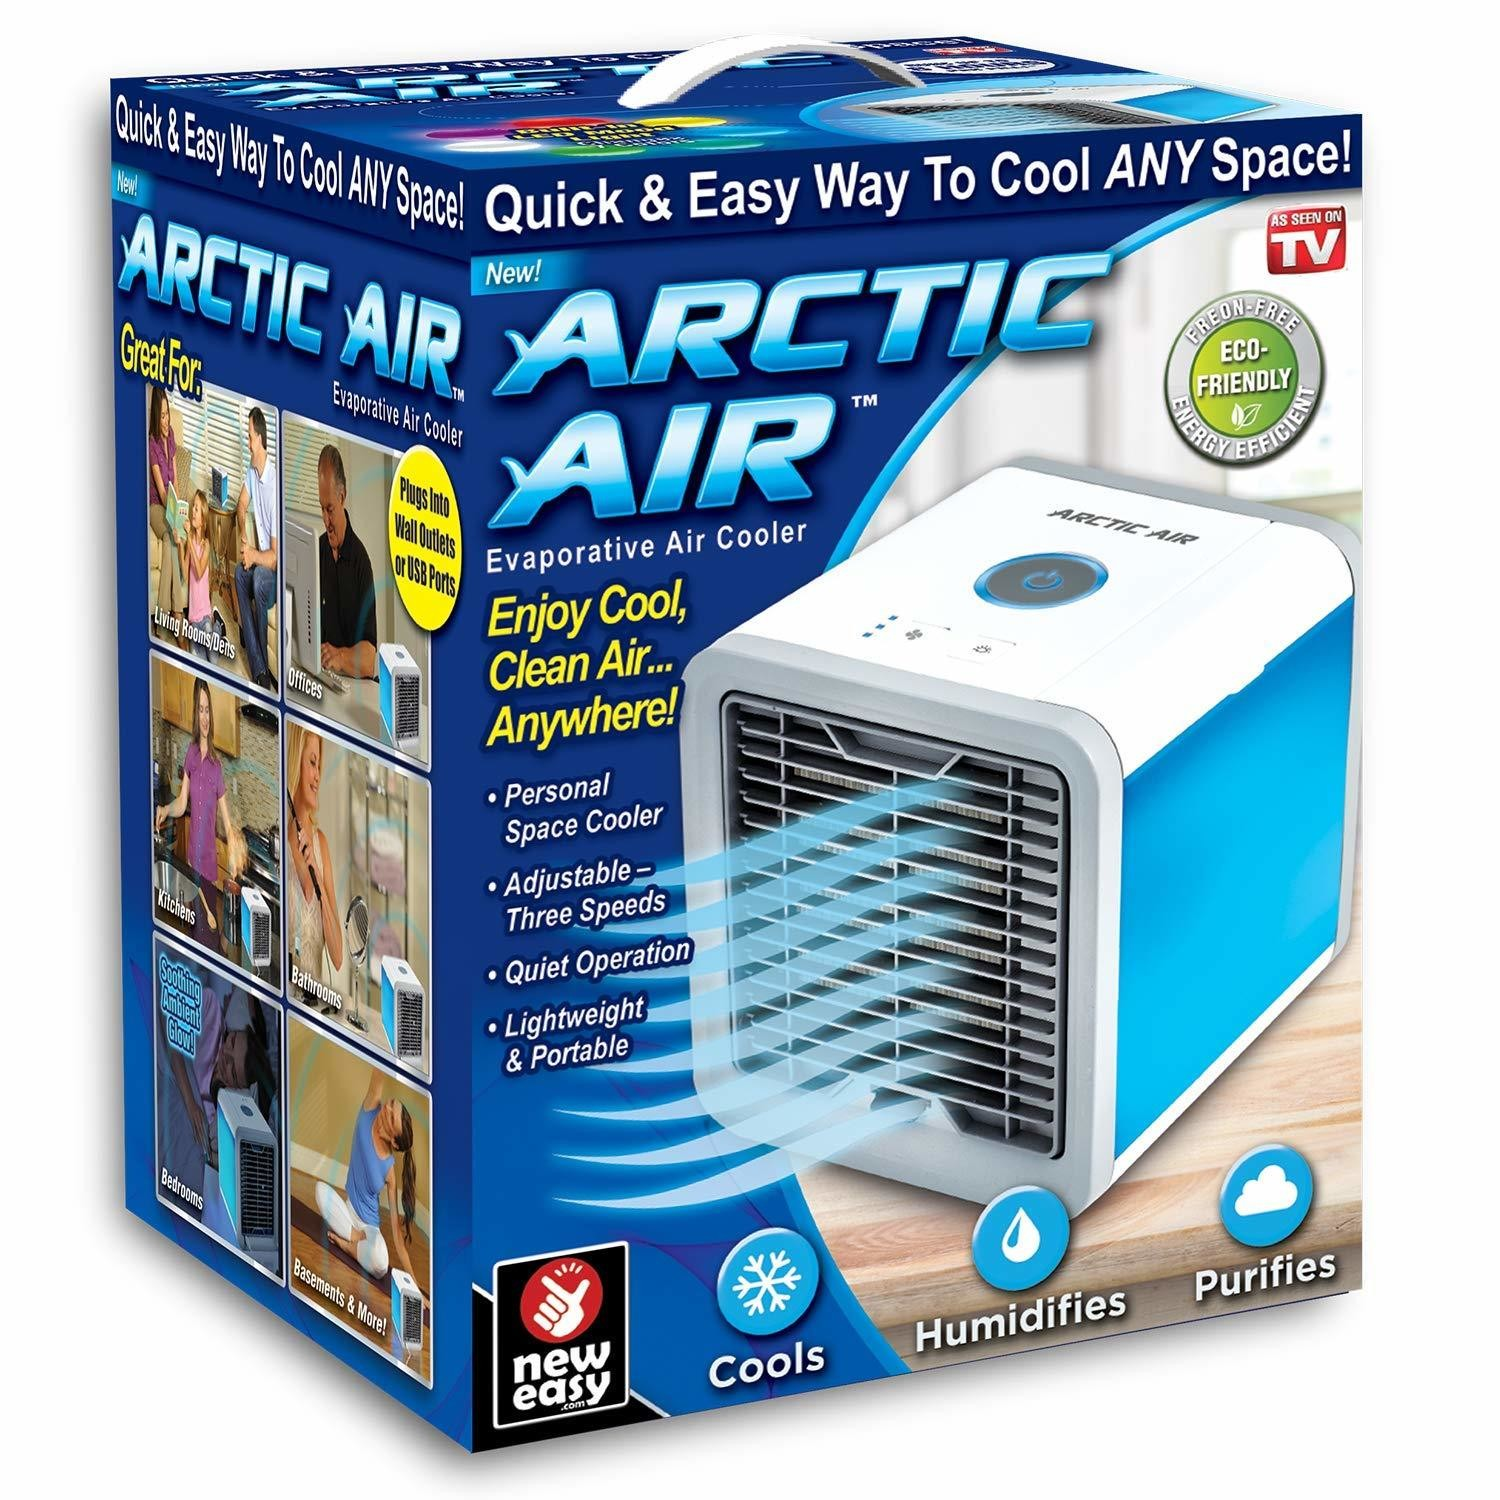 Mini Air Cooler Refroidisseur Purificateur et Humidifiant d'Air - Personal Air Cooler White (MODELE PRECEDENT)